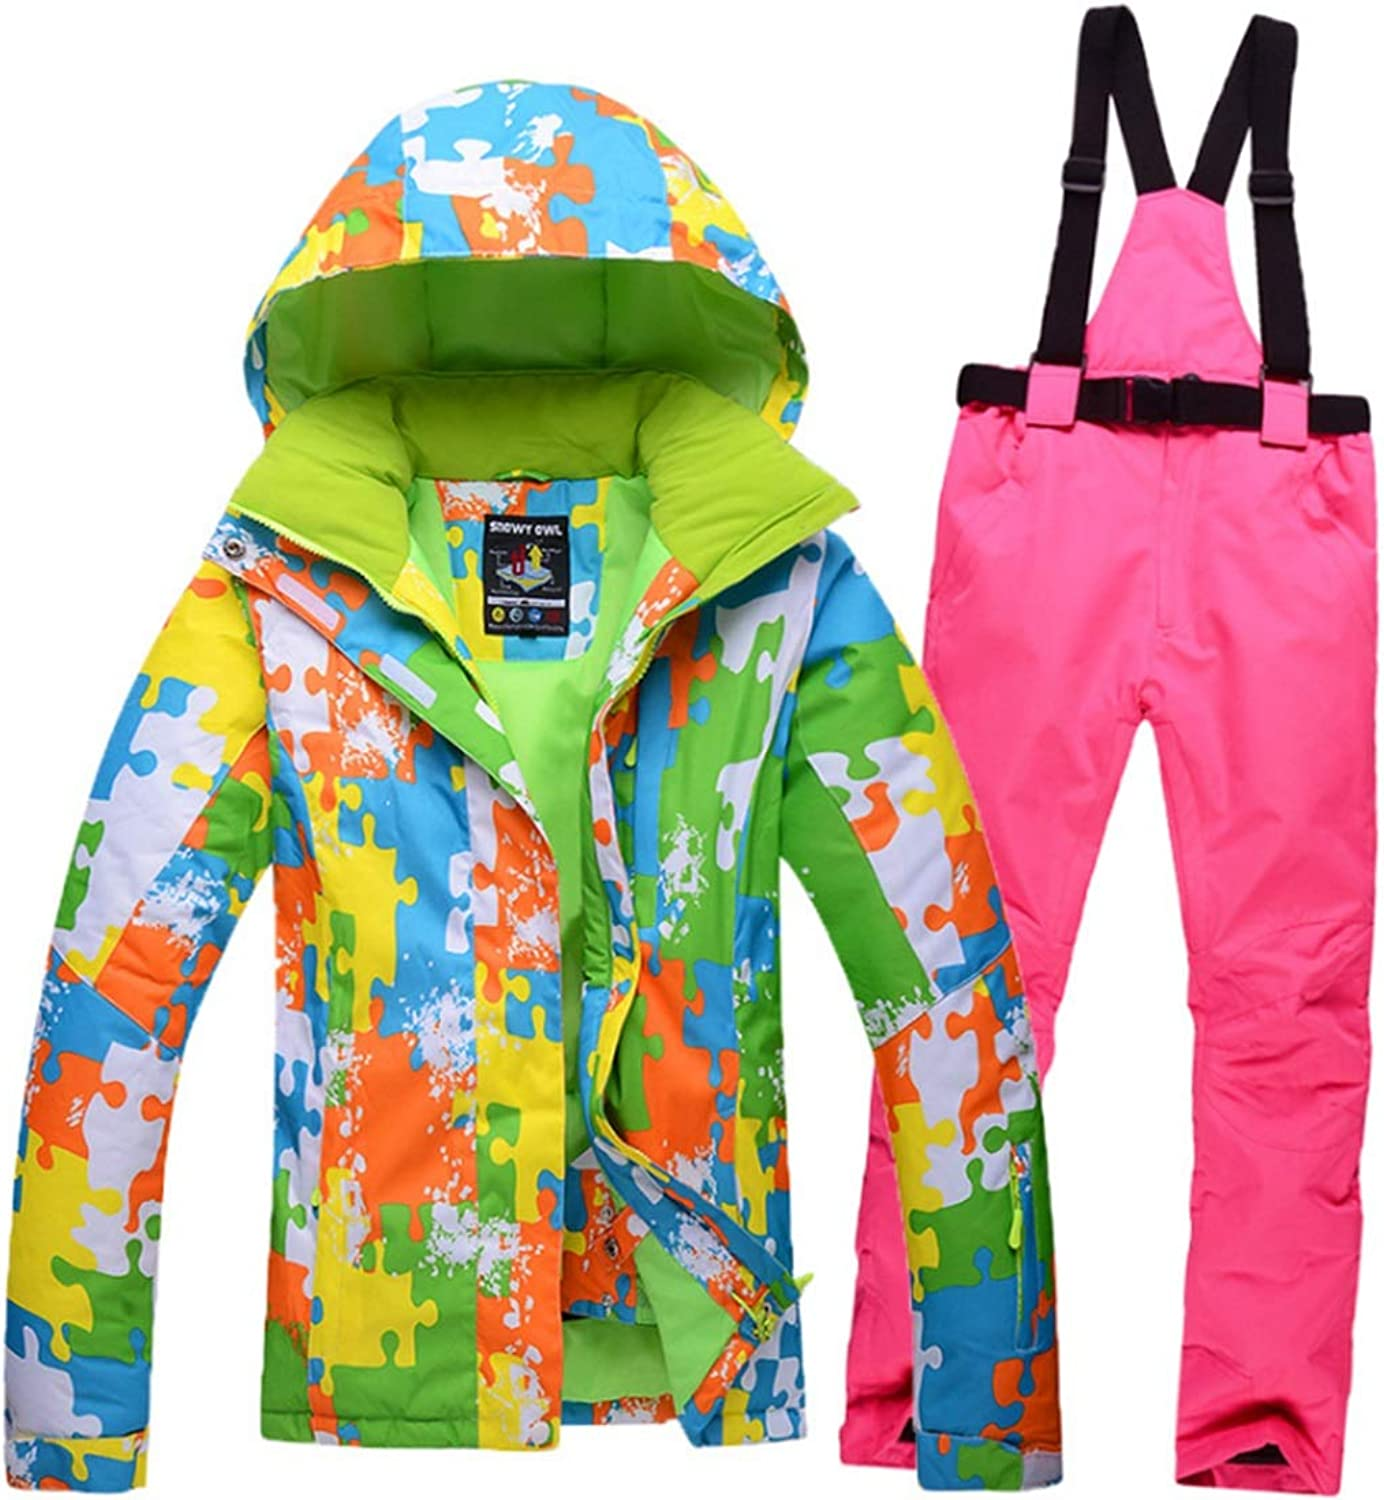 CEFULTY Women Jacket Winter Girl Coat Outdoor Sport Dress Ski Jacket for Rain Snow Outdoor Hiking